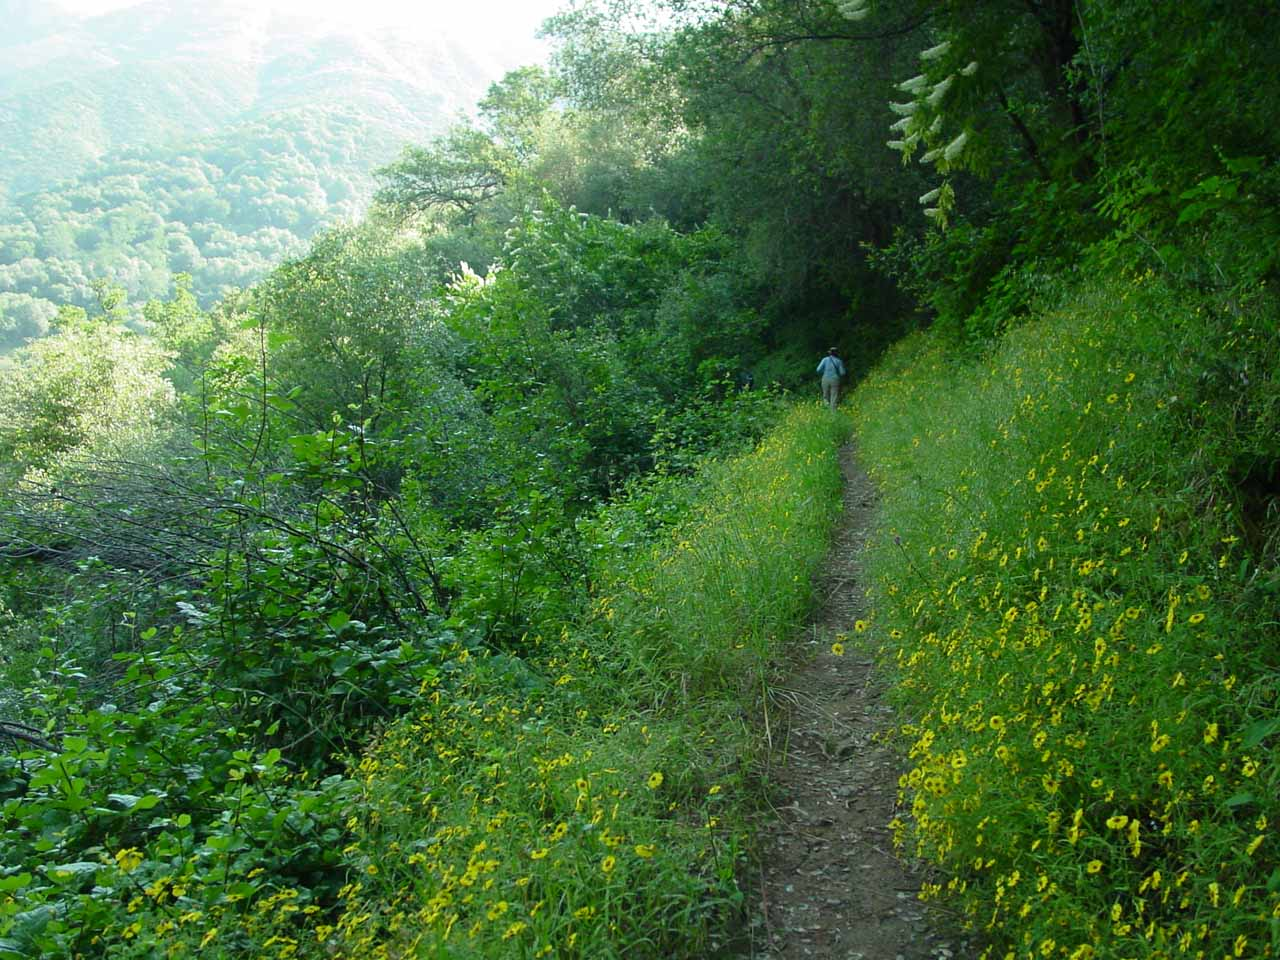 Mom walking through narrow trail flanked by lots of wildflowers as well as tick-prone foliage